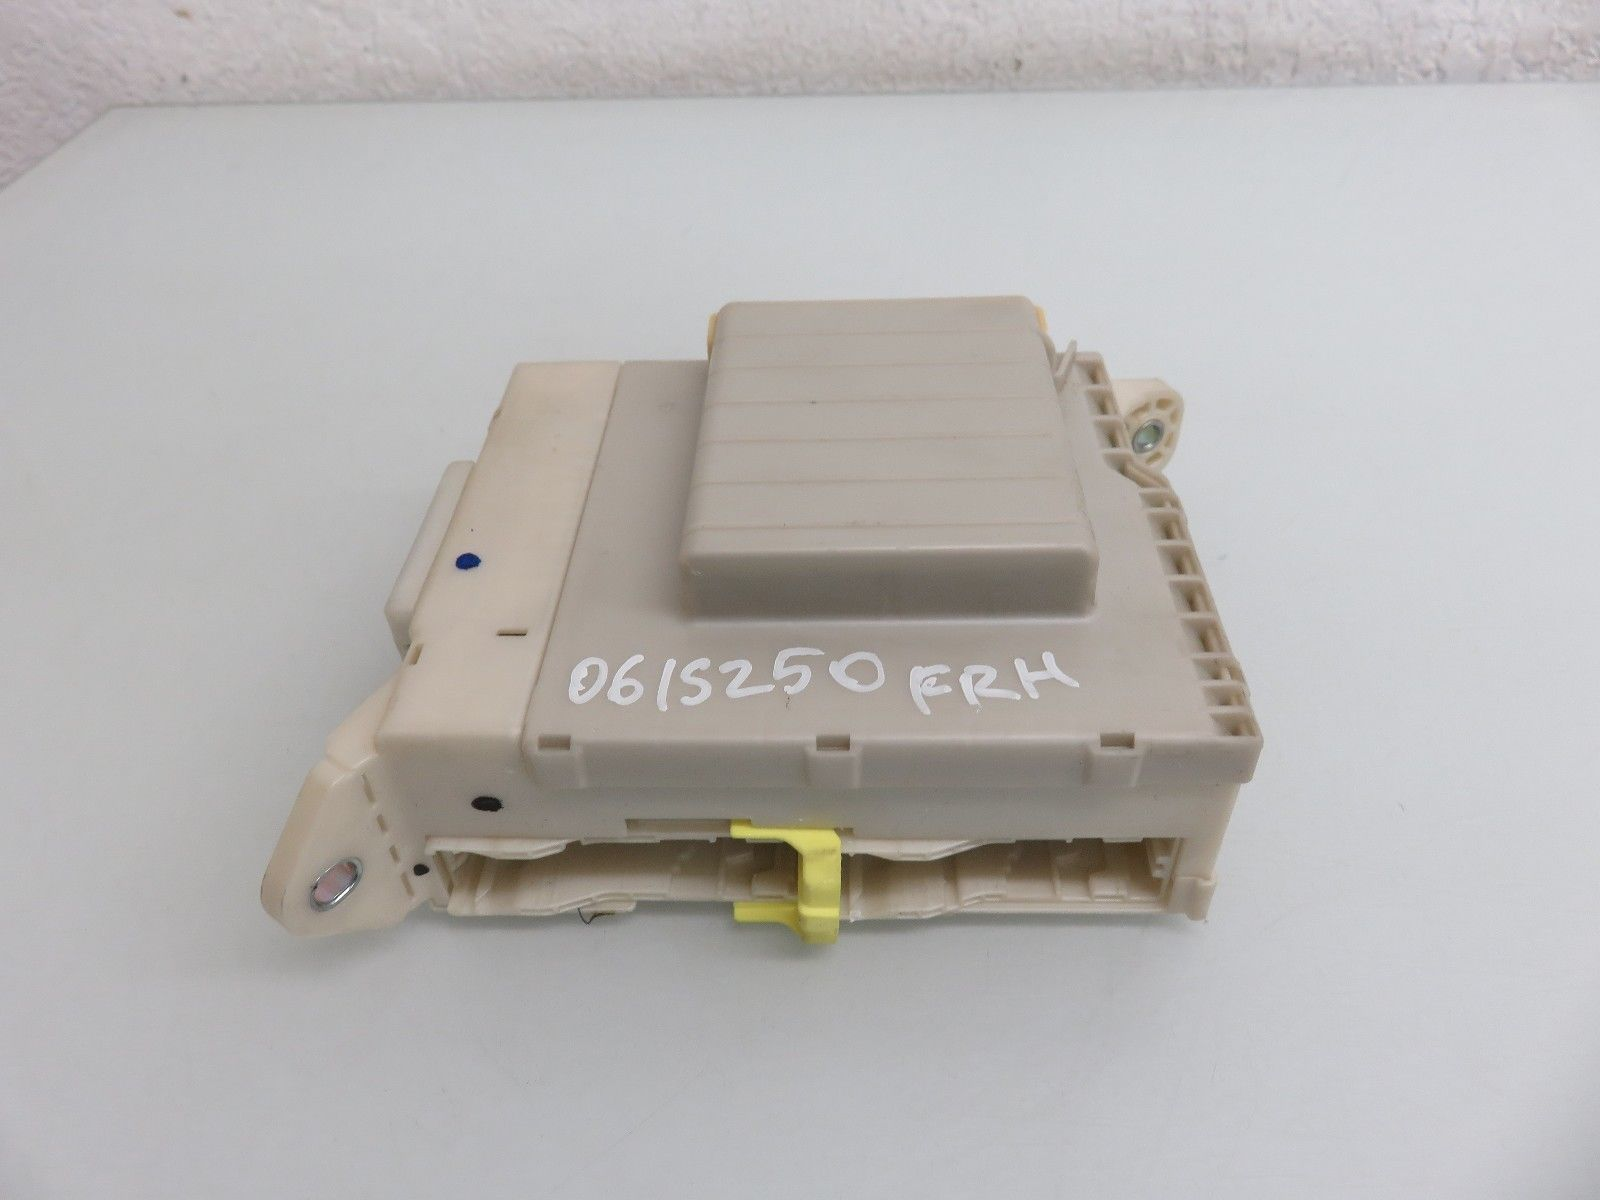 Lexus Fuse Relay Box Trusted Schematics Diagram 2005 Gs 430 Front 06 08 Is250 Is350 Interior Oem 82672 53040 For 1998 Es 300